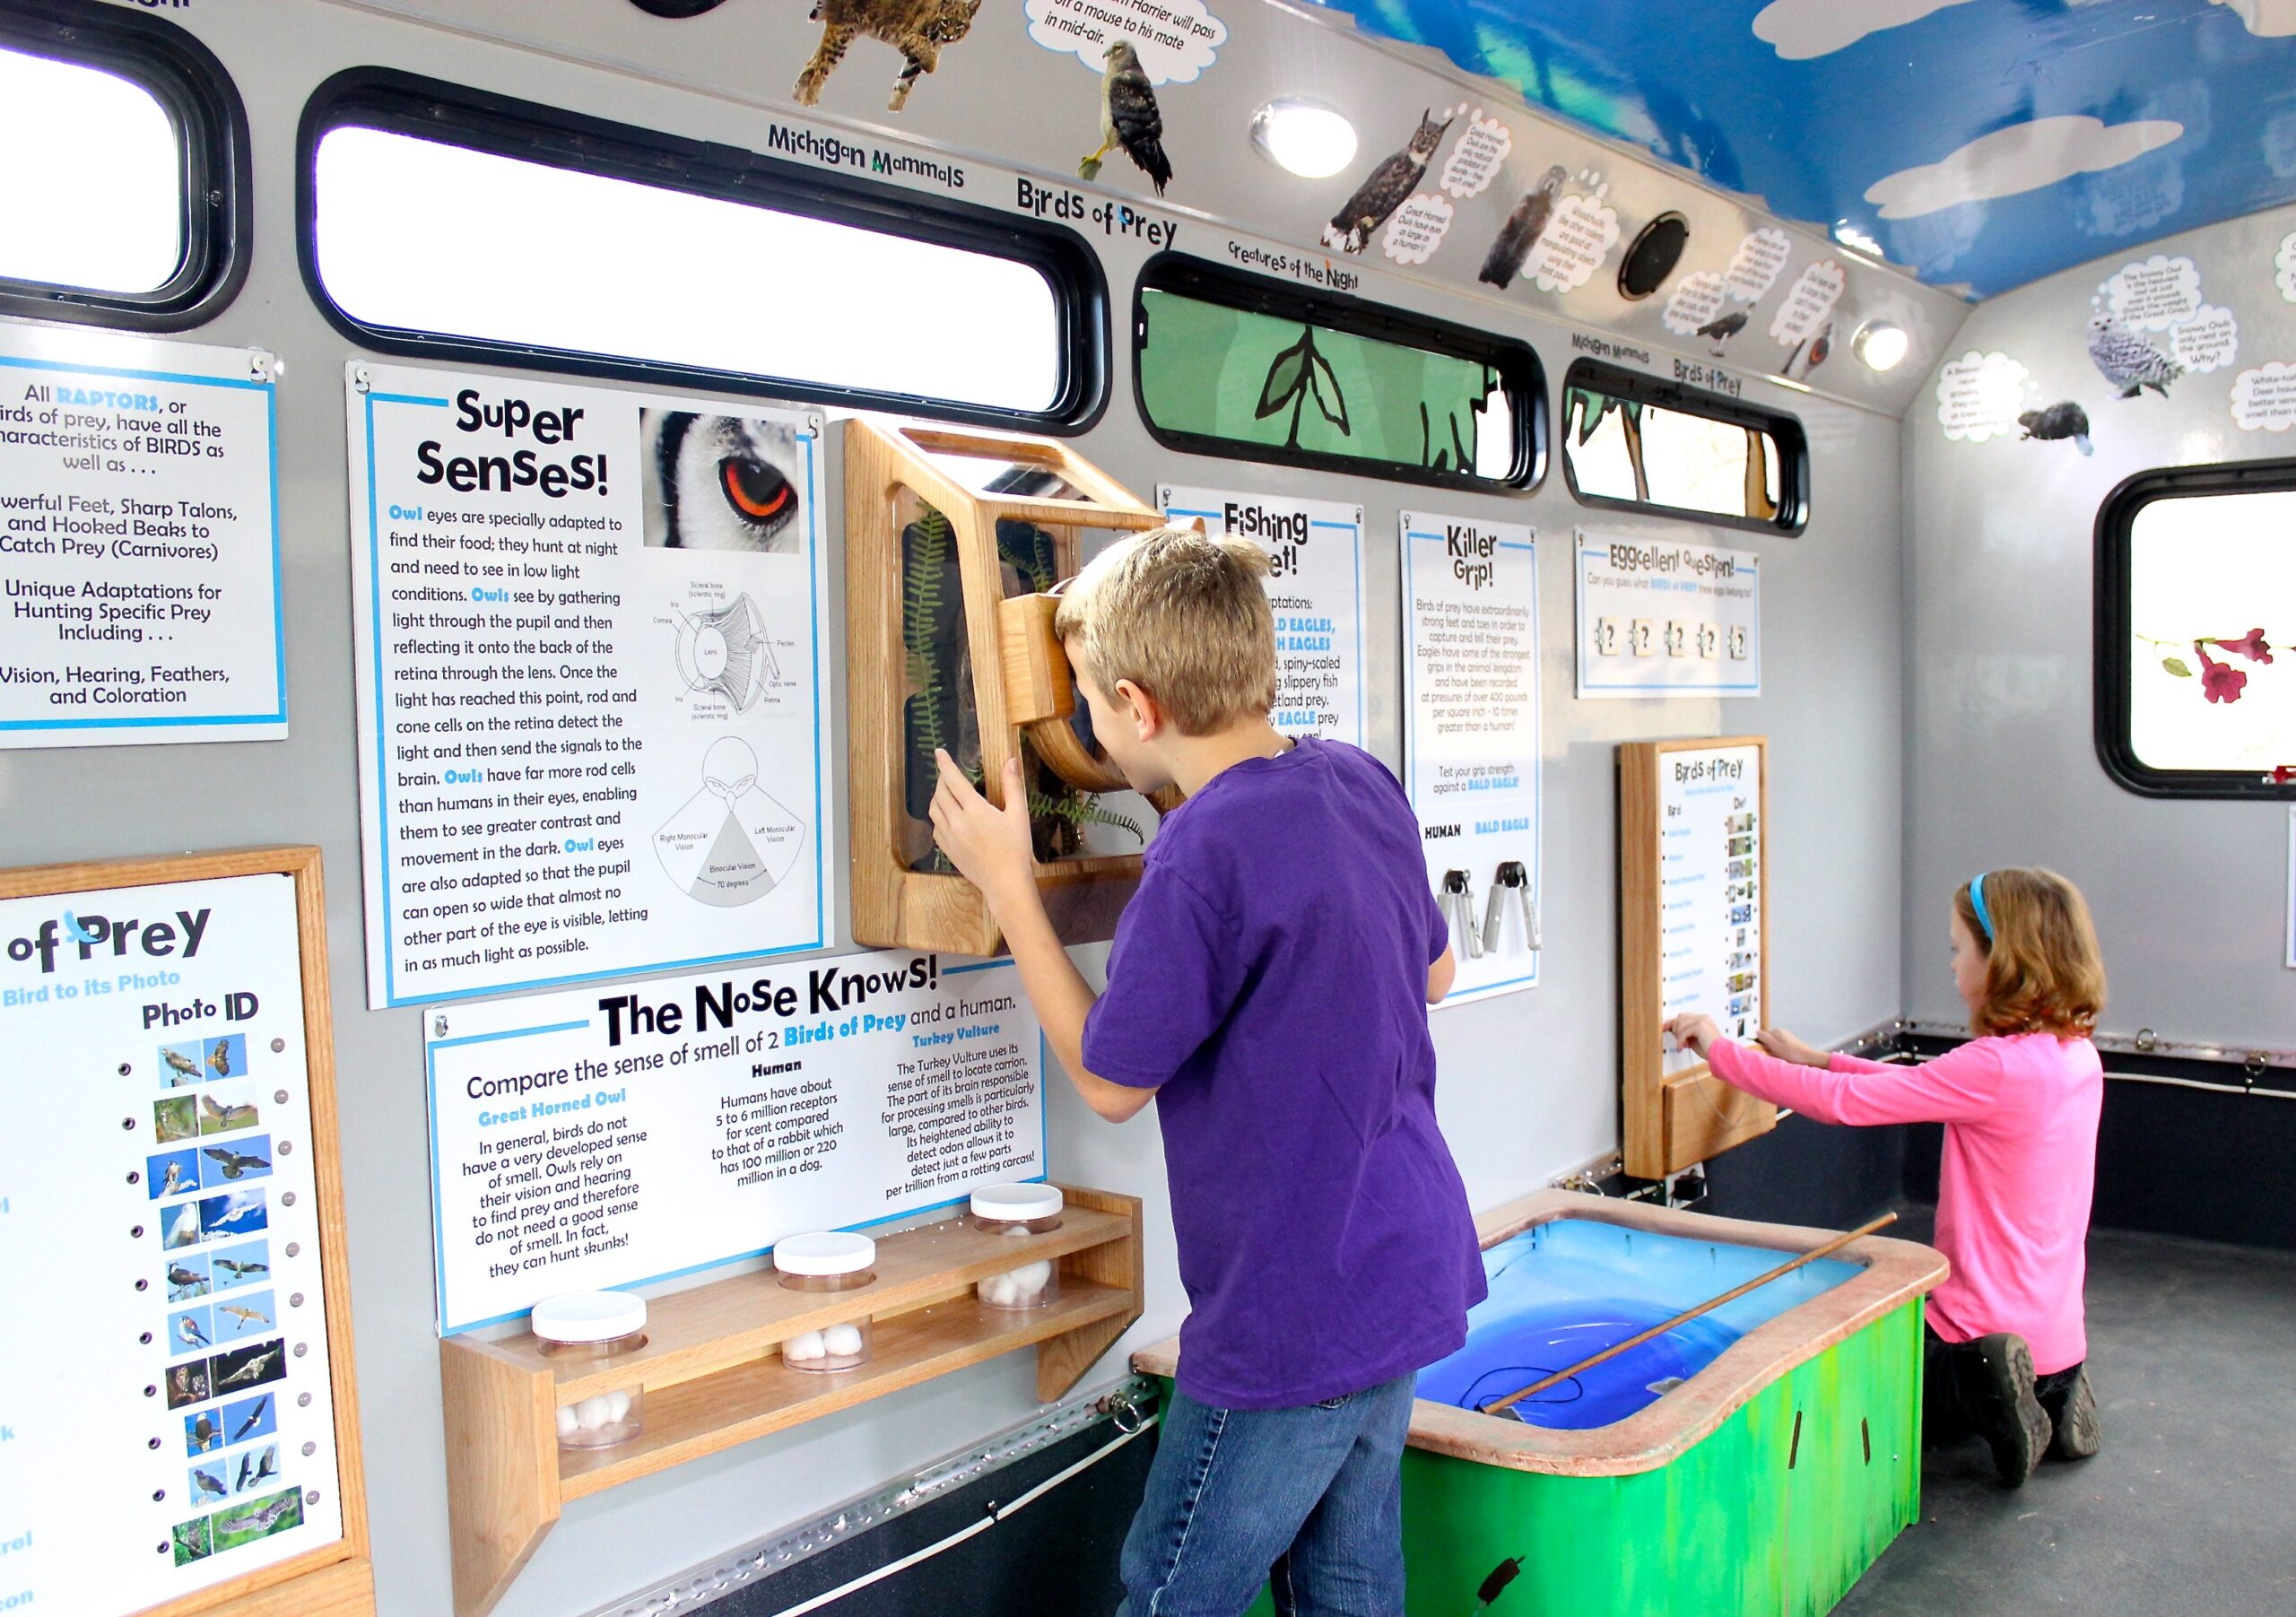 Inside the mobile exhibits bus, featuring Wildlife Quiz Boards and Night Vision Interactive.